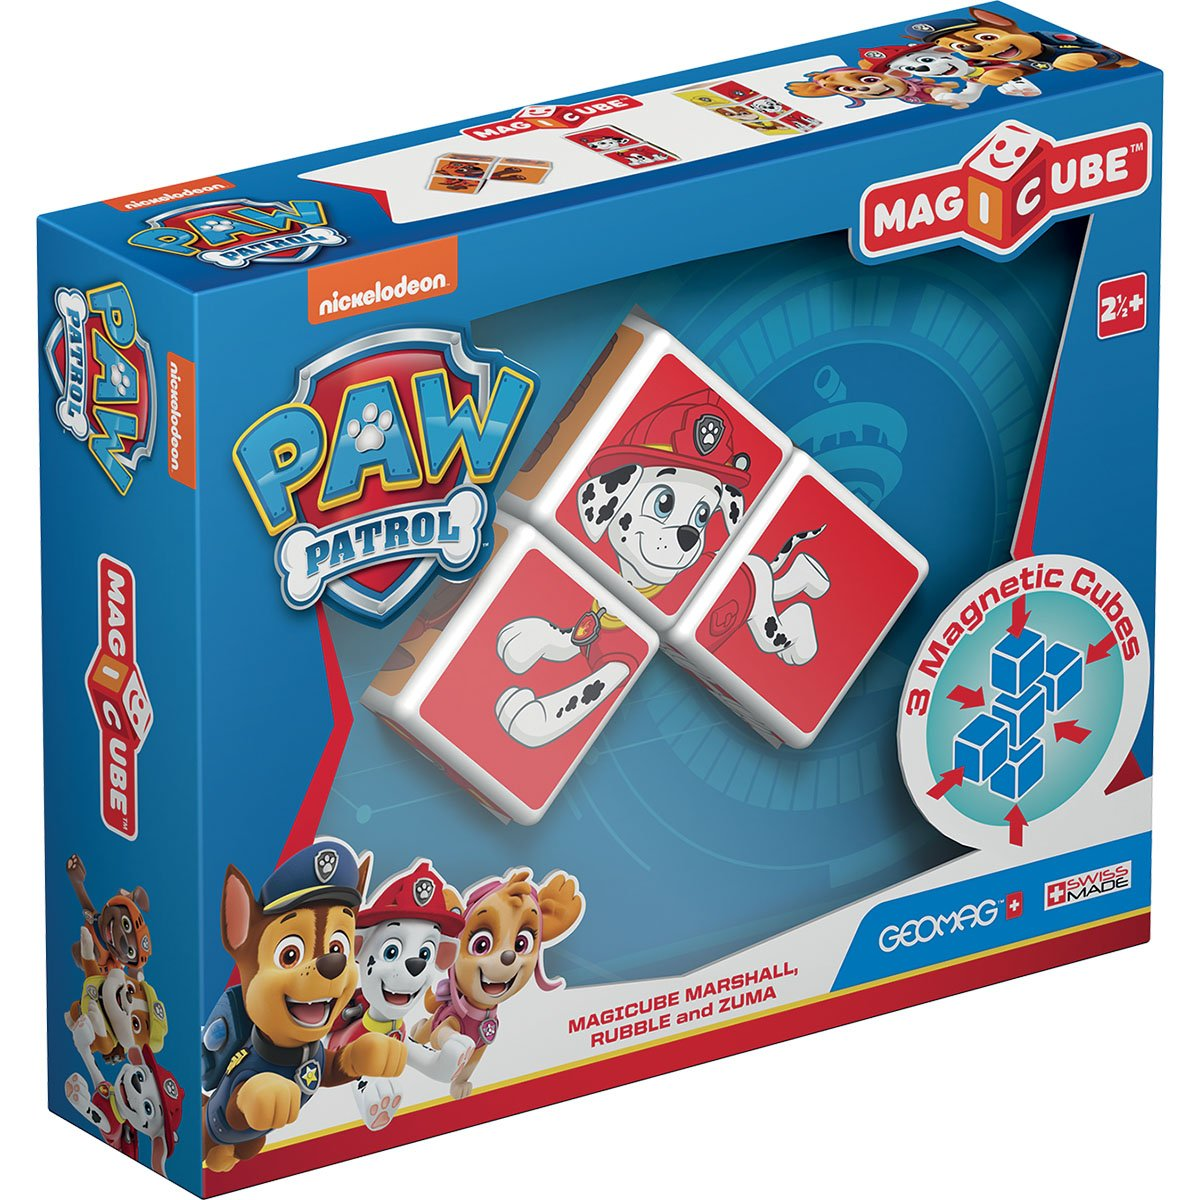 Joc de constructie magnetic Magic Cube, Paw Patrol, Marshall, Rubble si Zuma